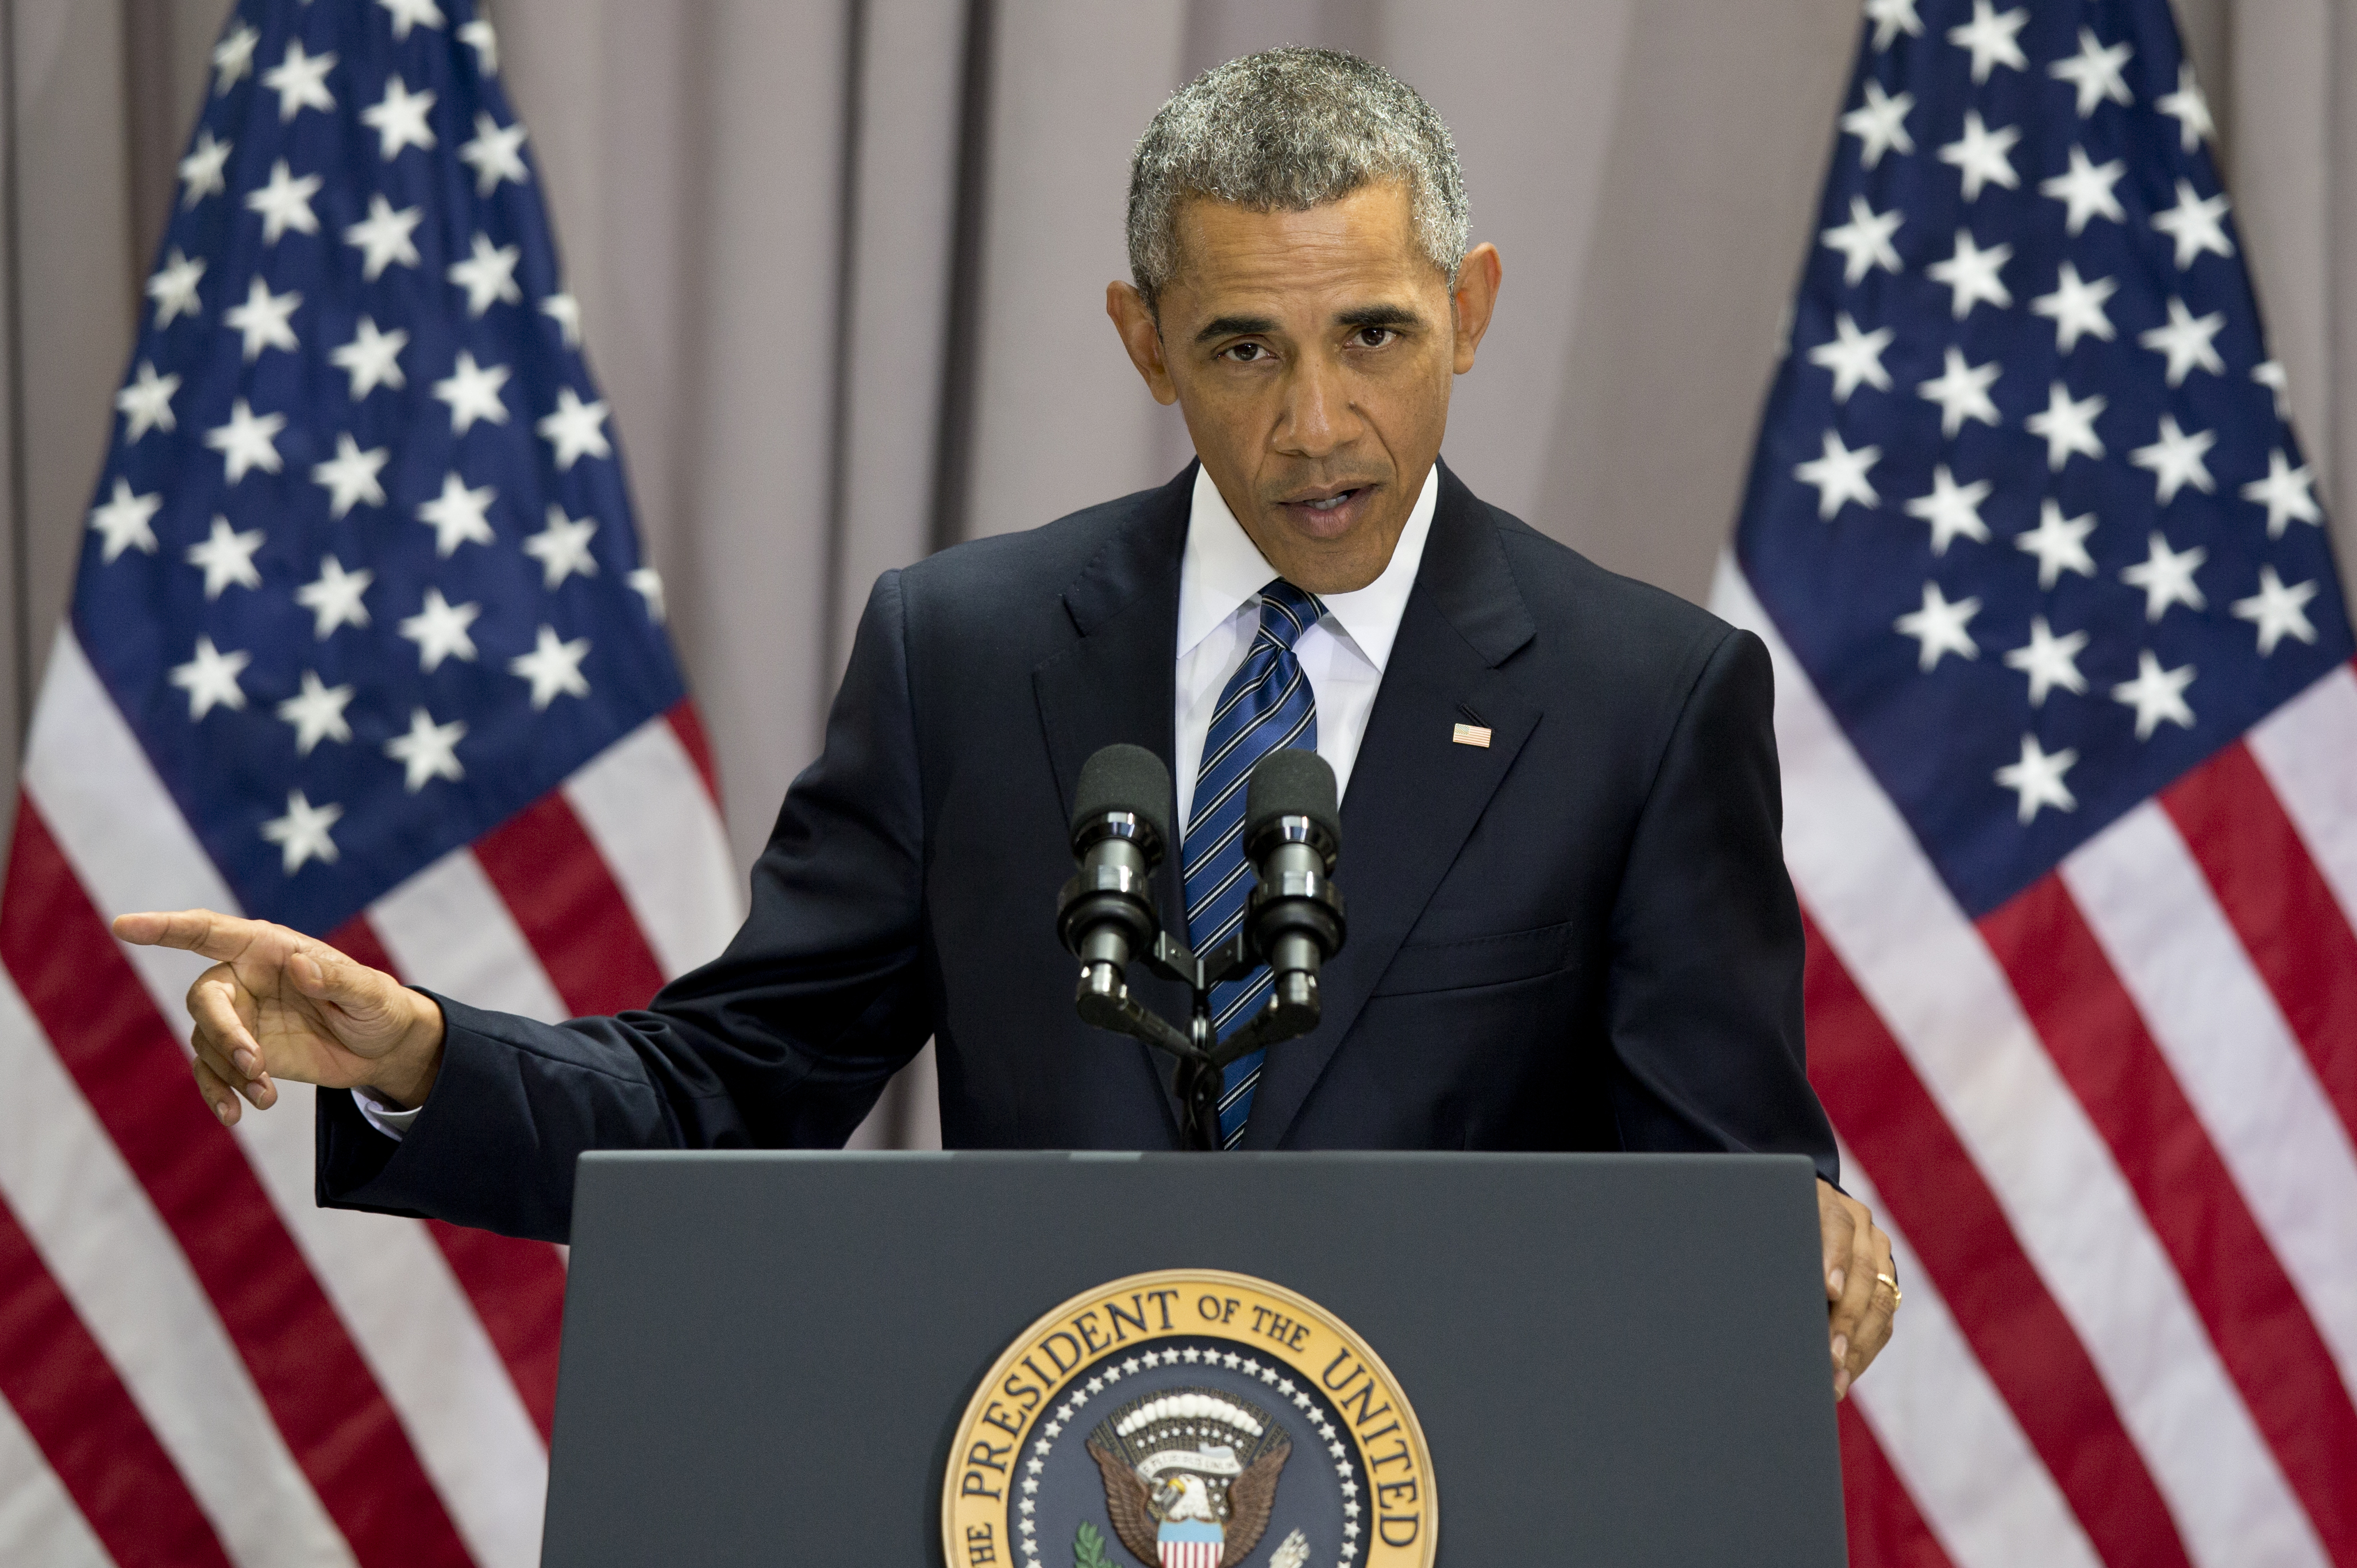 President Barack Obama speaks about the nuclear deal with Iran at American University in Washington, Aug. 5, 2015.